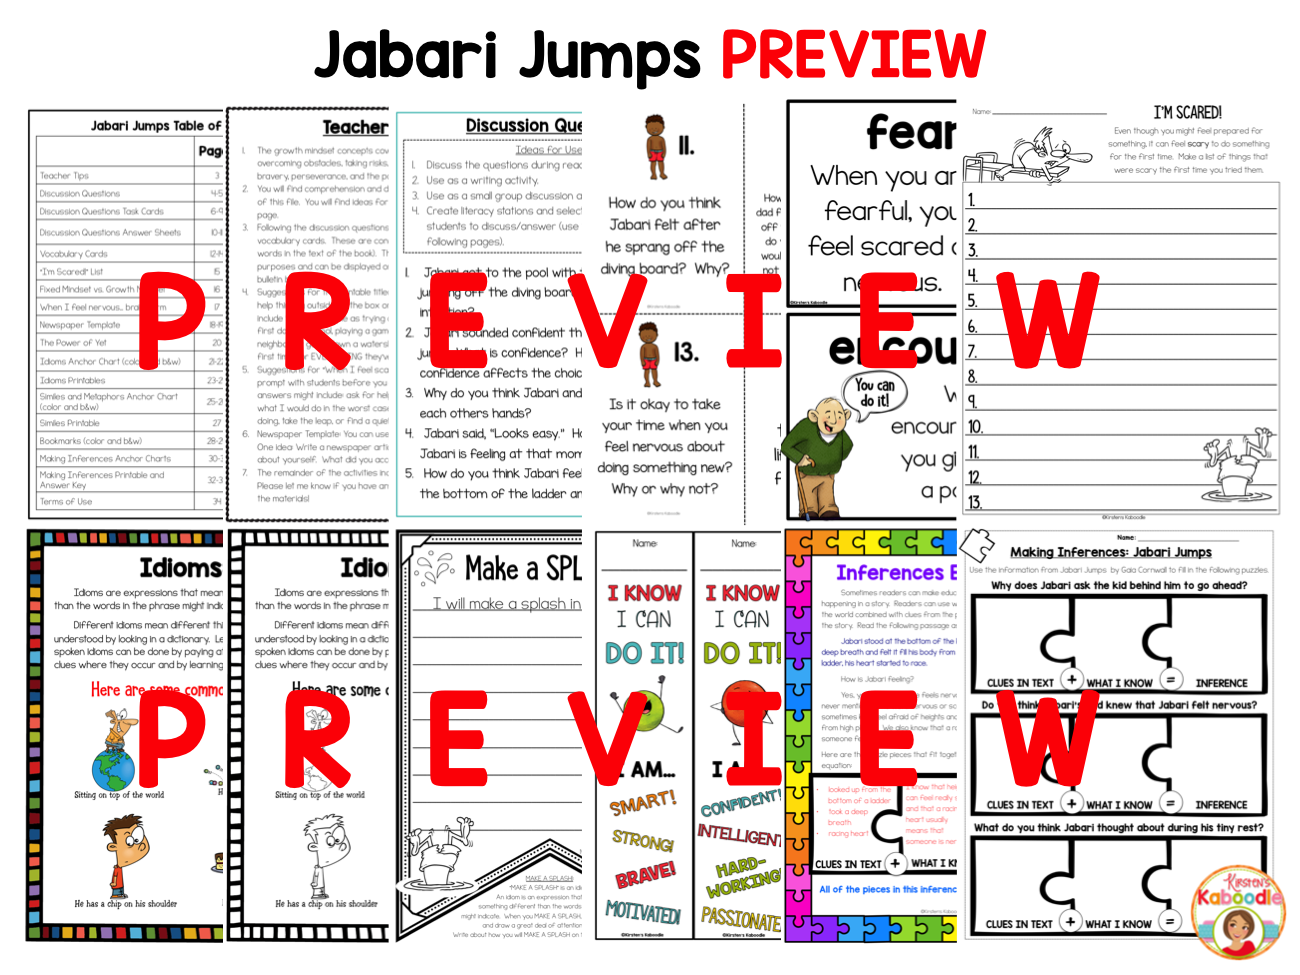 Jabari Jumps Activities: Story by Gaia Cornwall